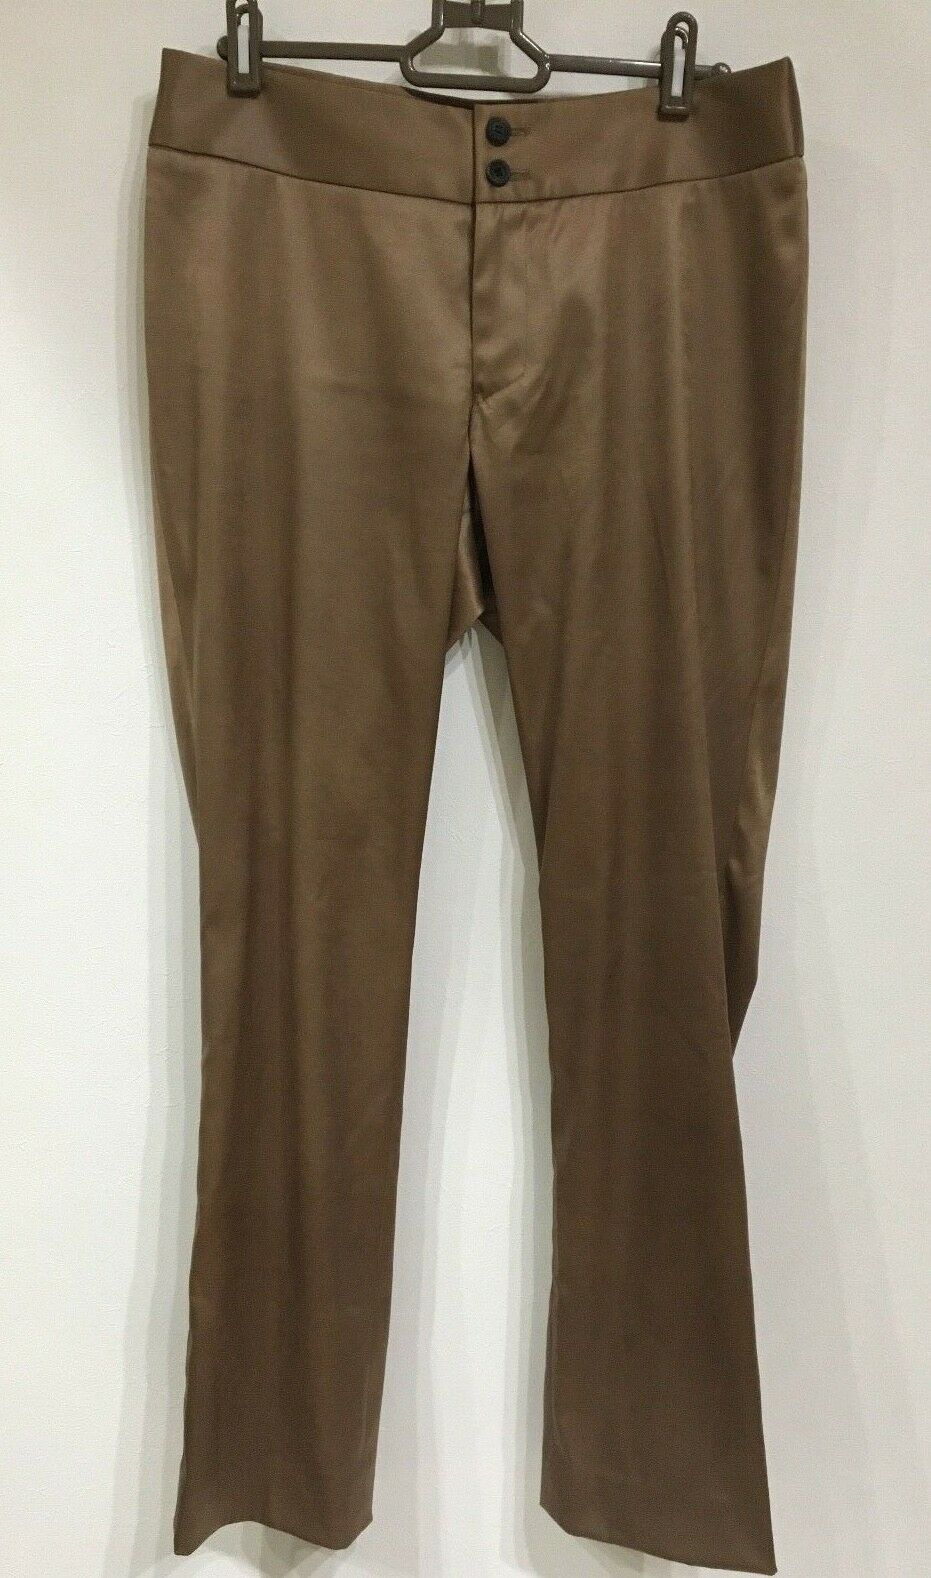 Issey Miyake Pants gold Brown Size 3 Free Shipping From Japan Excellent